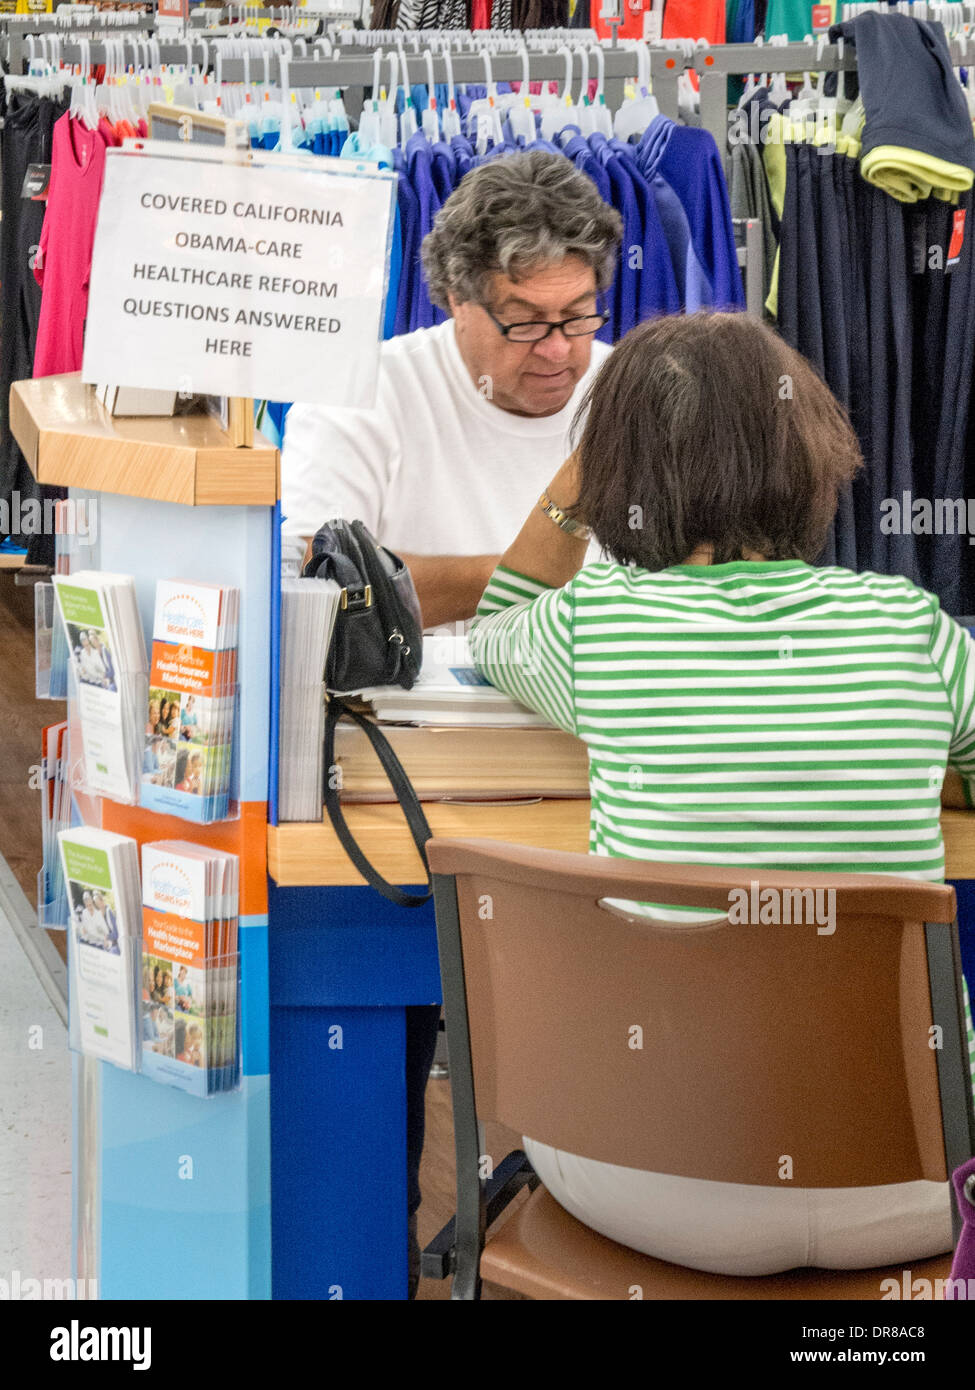 An insurance agent mans a sales kiosk at a Laguna Niguel, CA, discount clothing store offering coverage under the Affordable Healthcare Act or Obamacare, known in the state as Covered California. Note sign and brochures. - Stock Image